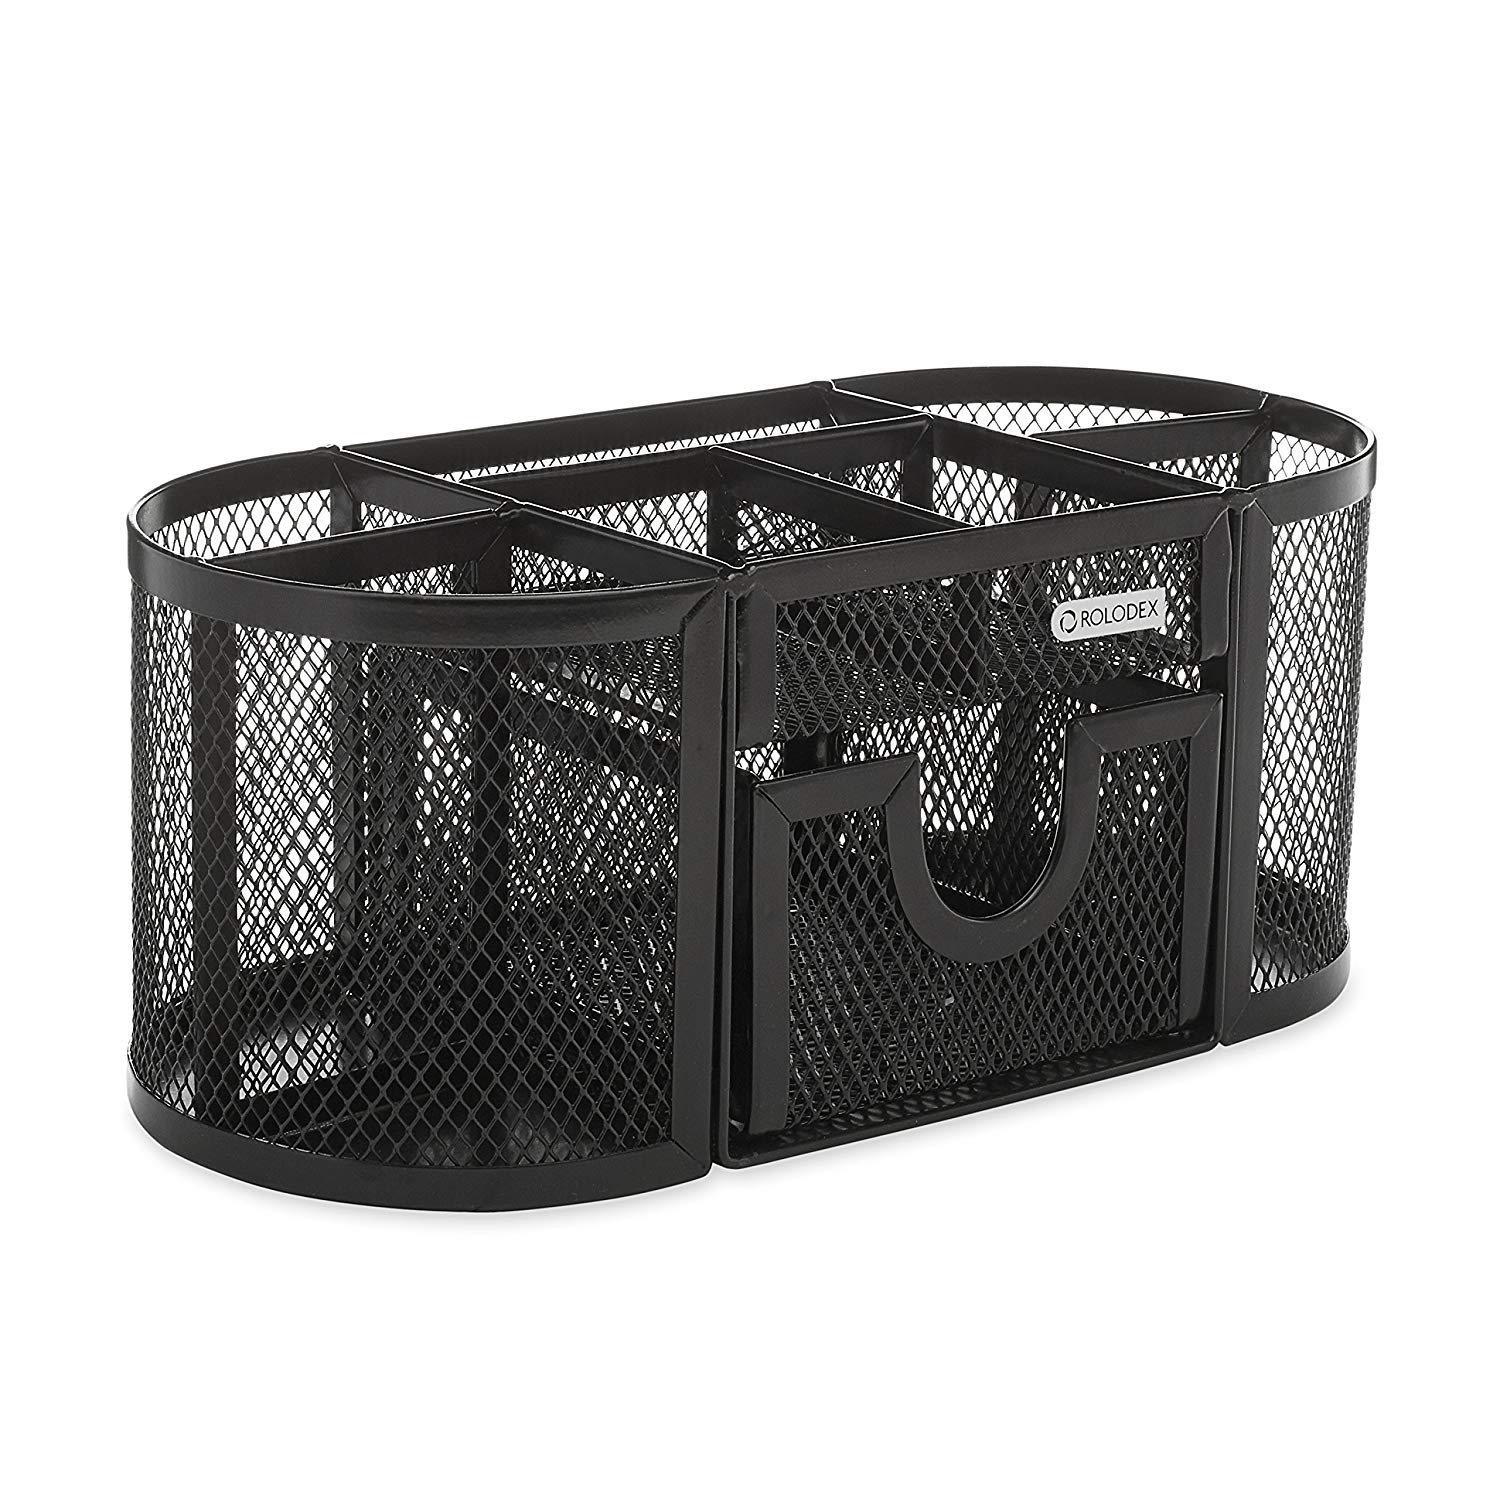 Rolodex Mesh Pencil Cup Organizer, Four Compartments, Steel, 9 1/3''x4 1/2''x4'', Black (1746466), Pack of 8 by Rolodex